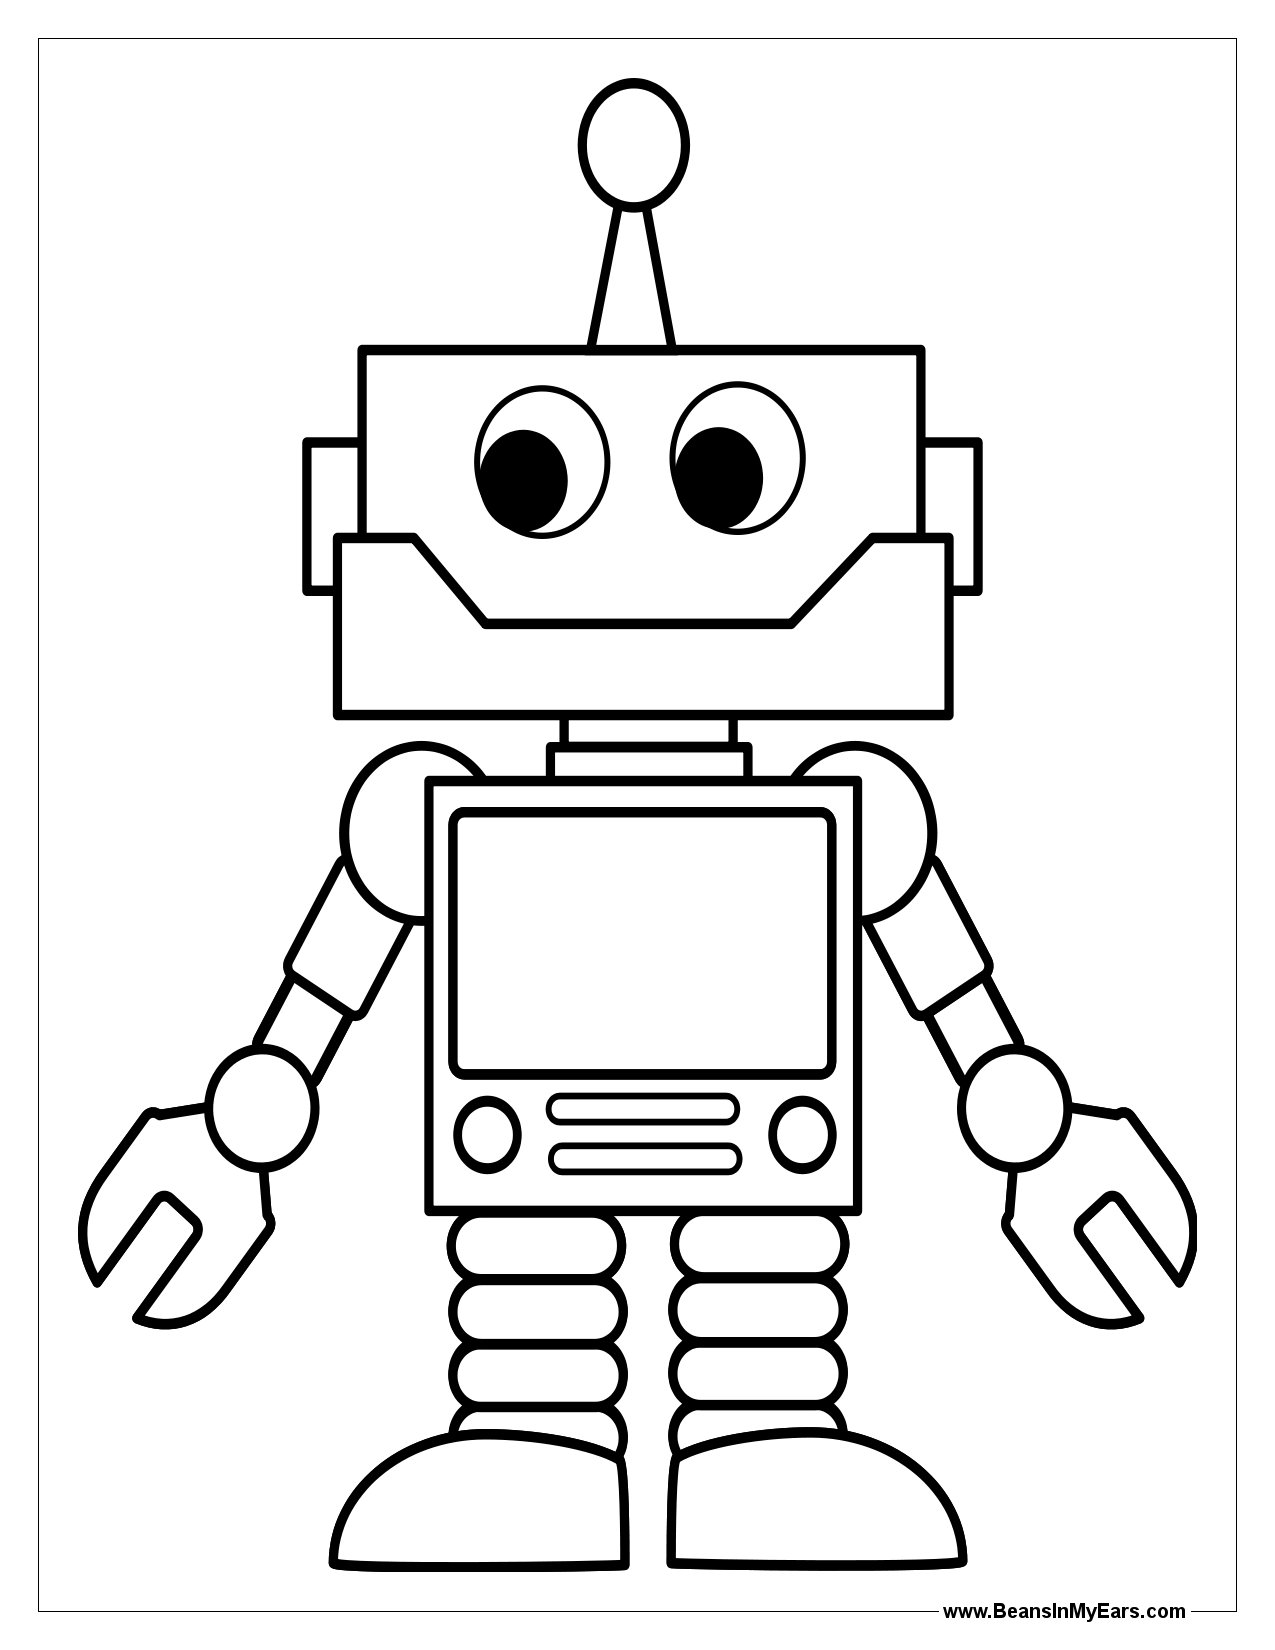 coloring robot pages free printable robot coloring pages for kids cool2bkids robot coloring pages 1 1